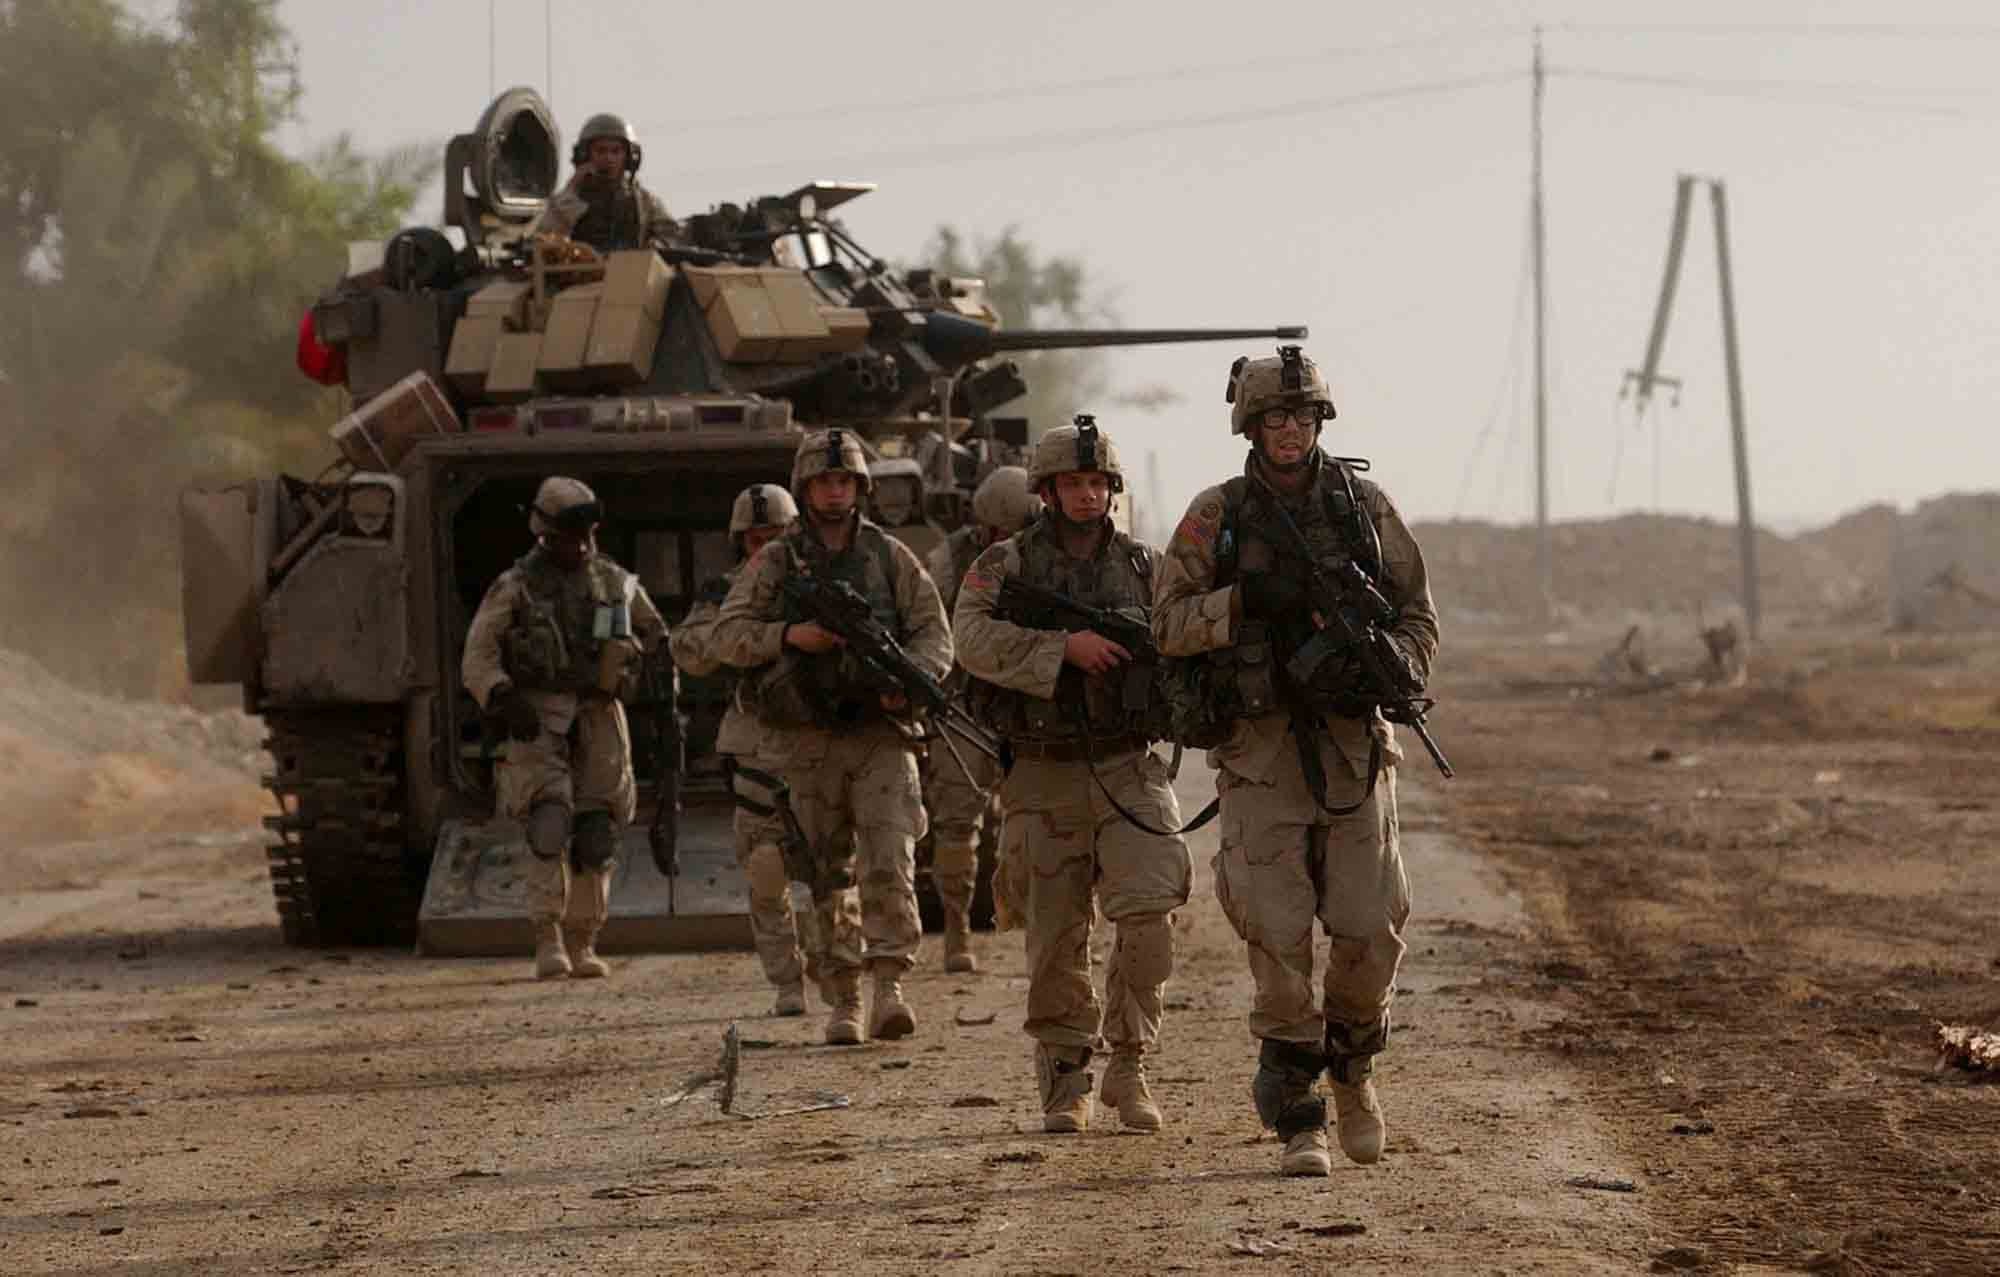 Military Soldiers In Combat 9389 Hd Wallpapers in War n Army 2000x1277